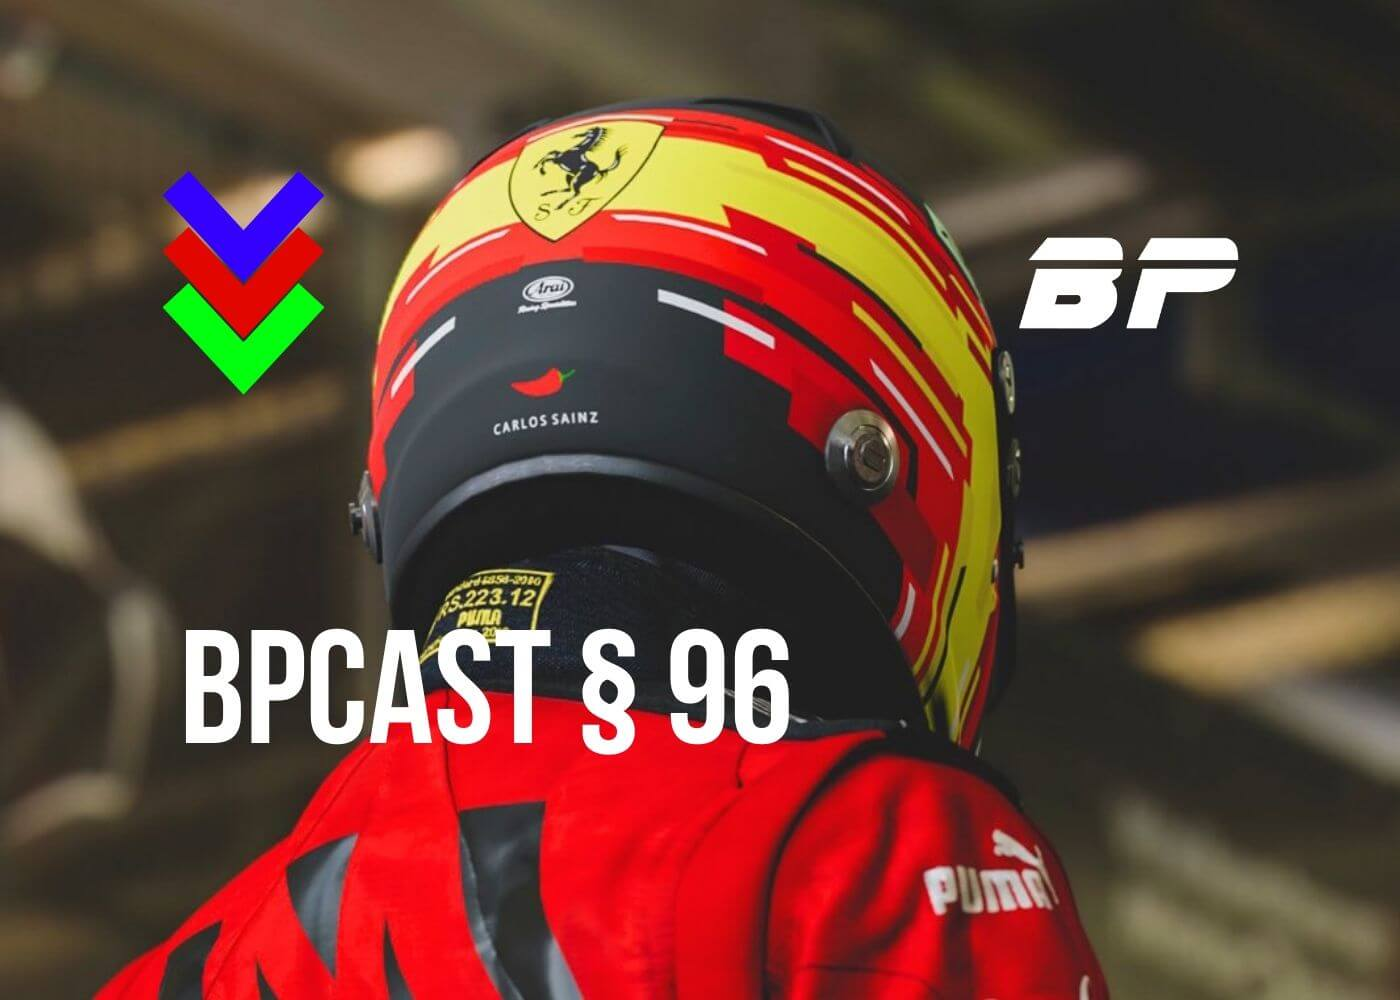 Photo of BPCast § 96 | Silly Season com Sainz e Ricciardo sem temporada de F1, coloca Vettel de escanteio e as apostas continuam para as vagas existentes!